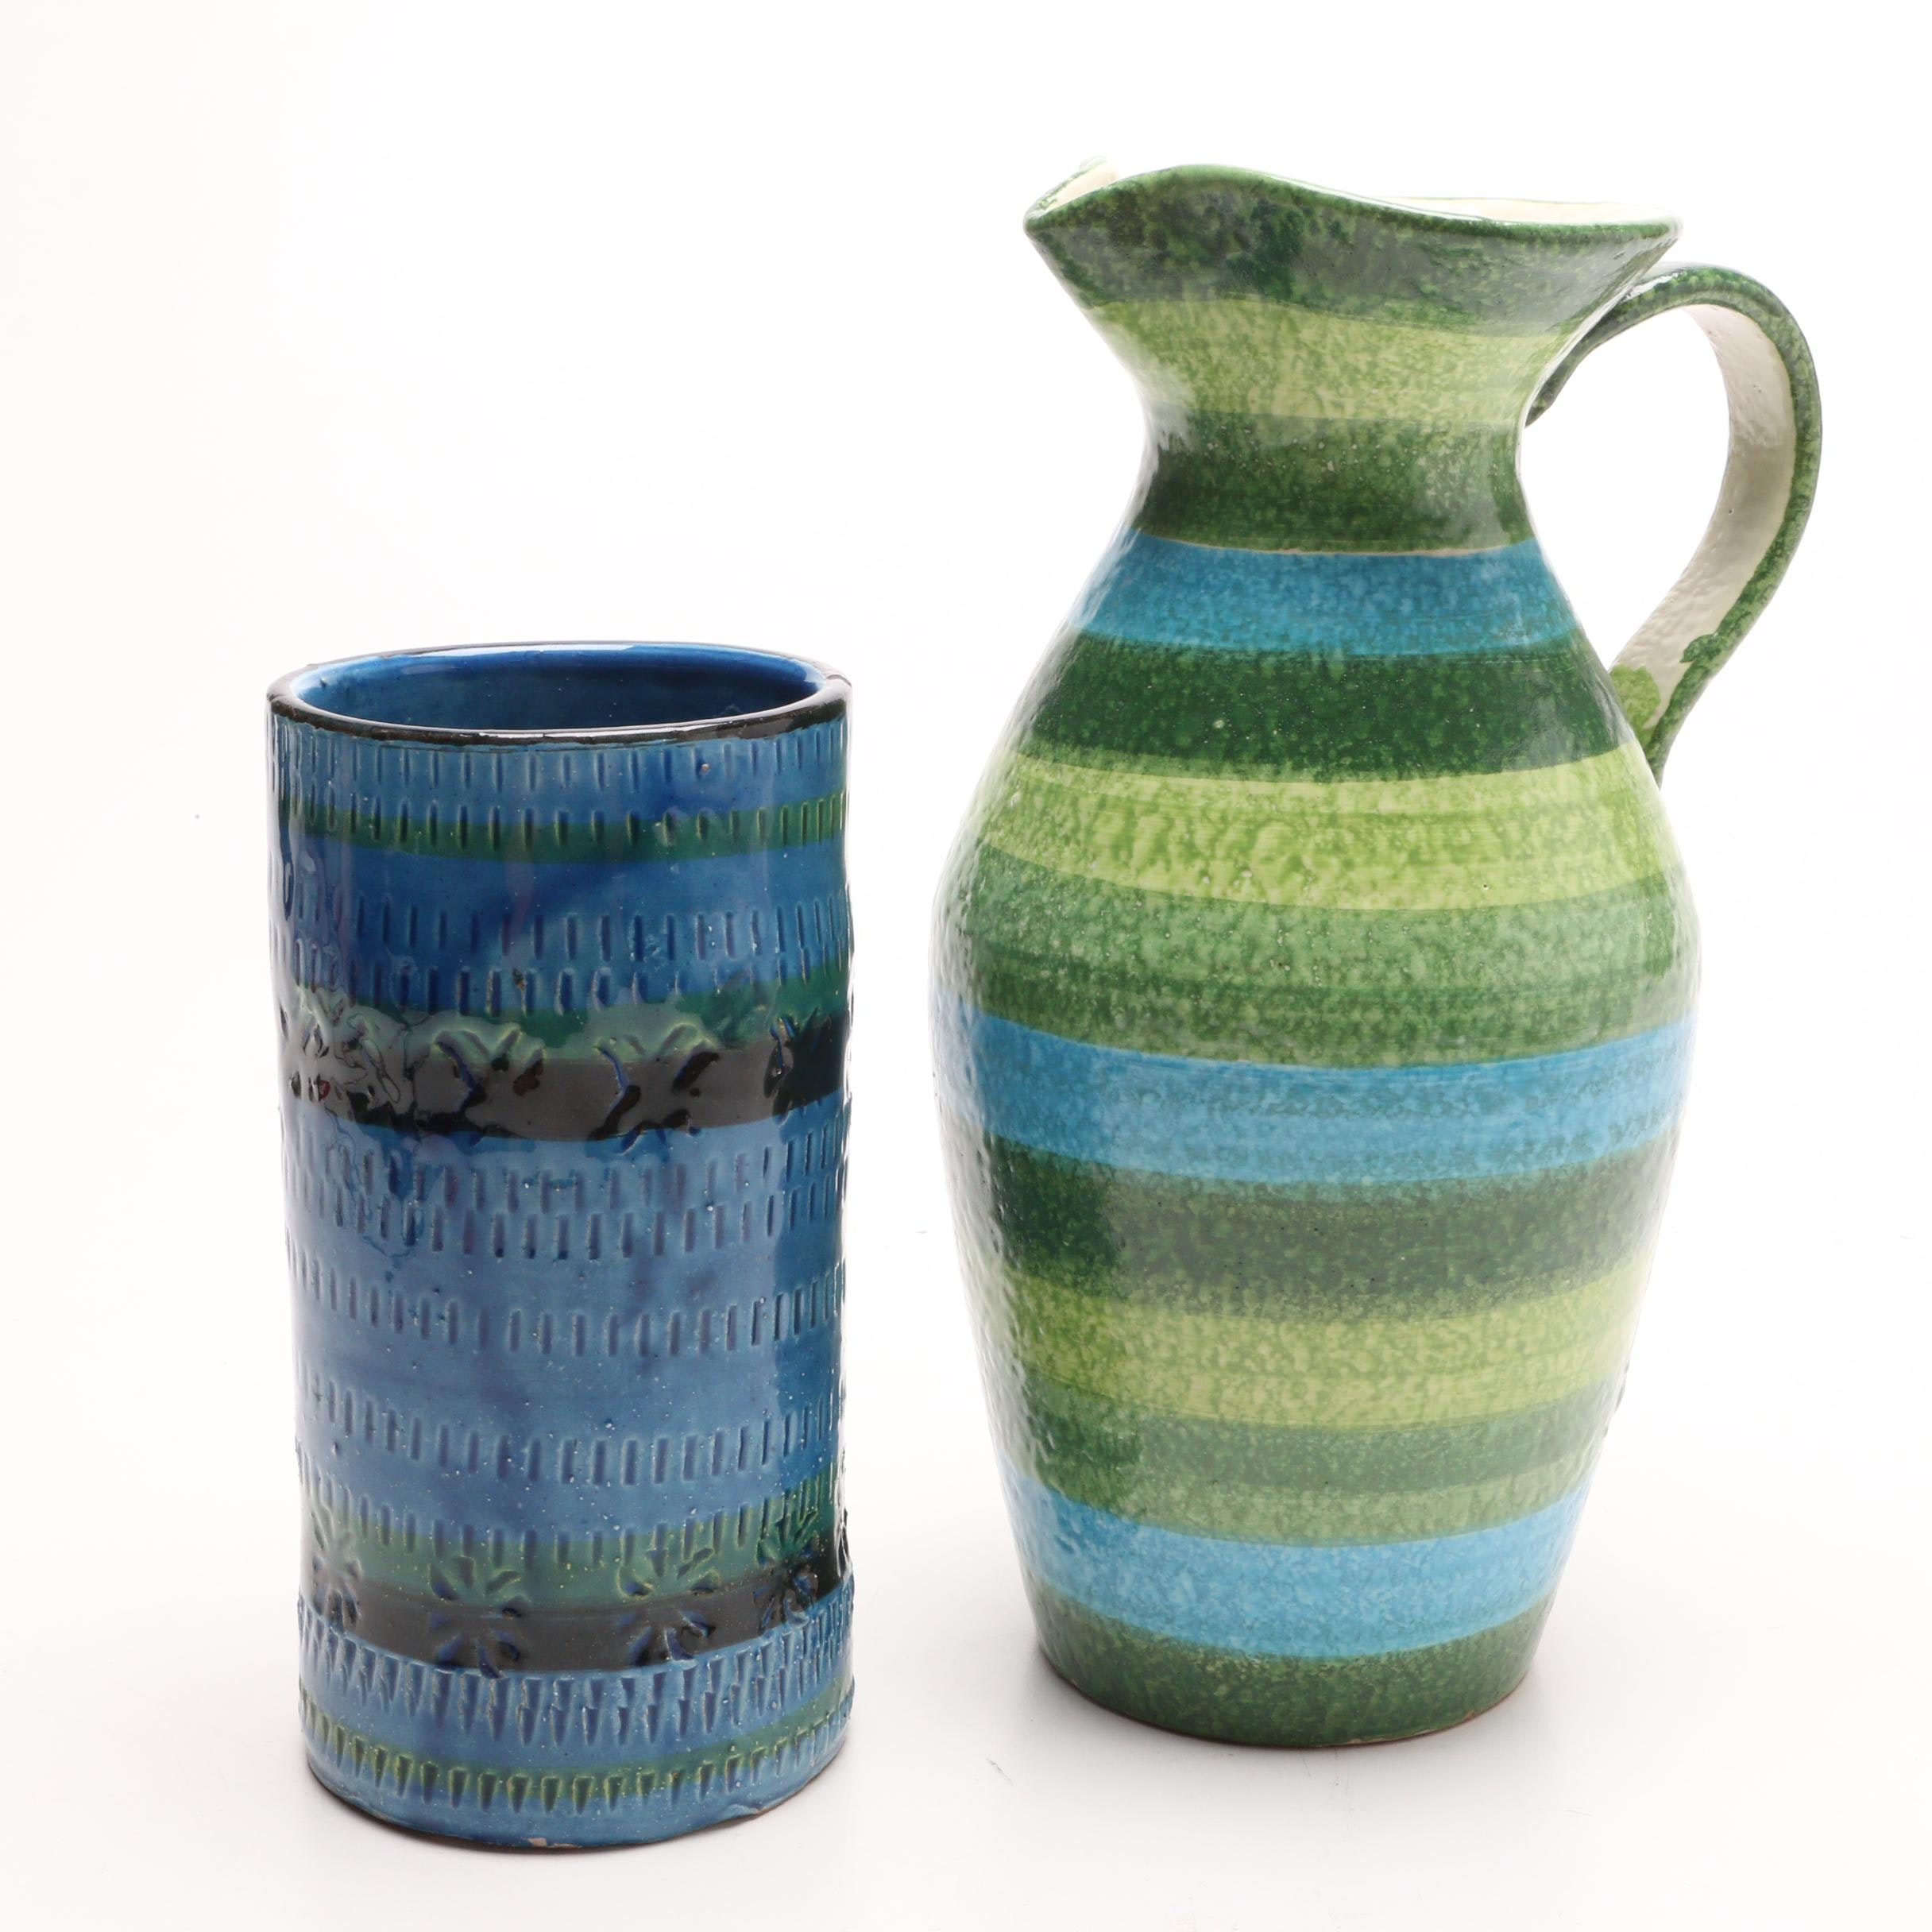 Italian Pottery Vase and Pitcher In the Style of Londi